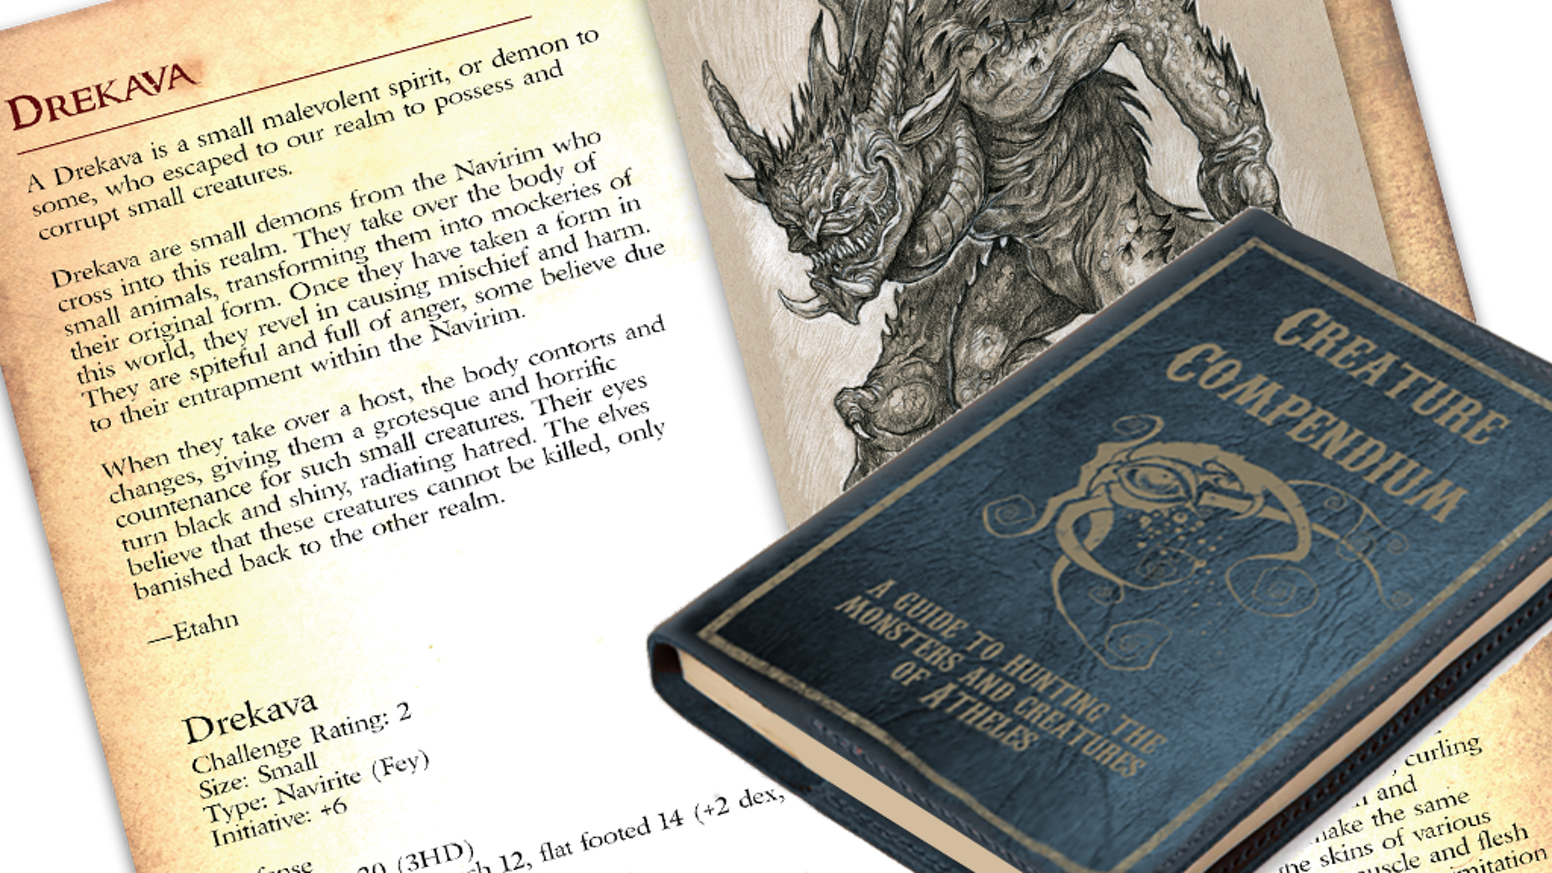 Be a Part of Bringing the SagaBorn Roleplaying Game's Creature Compendium to Life